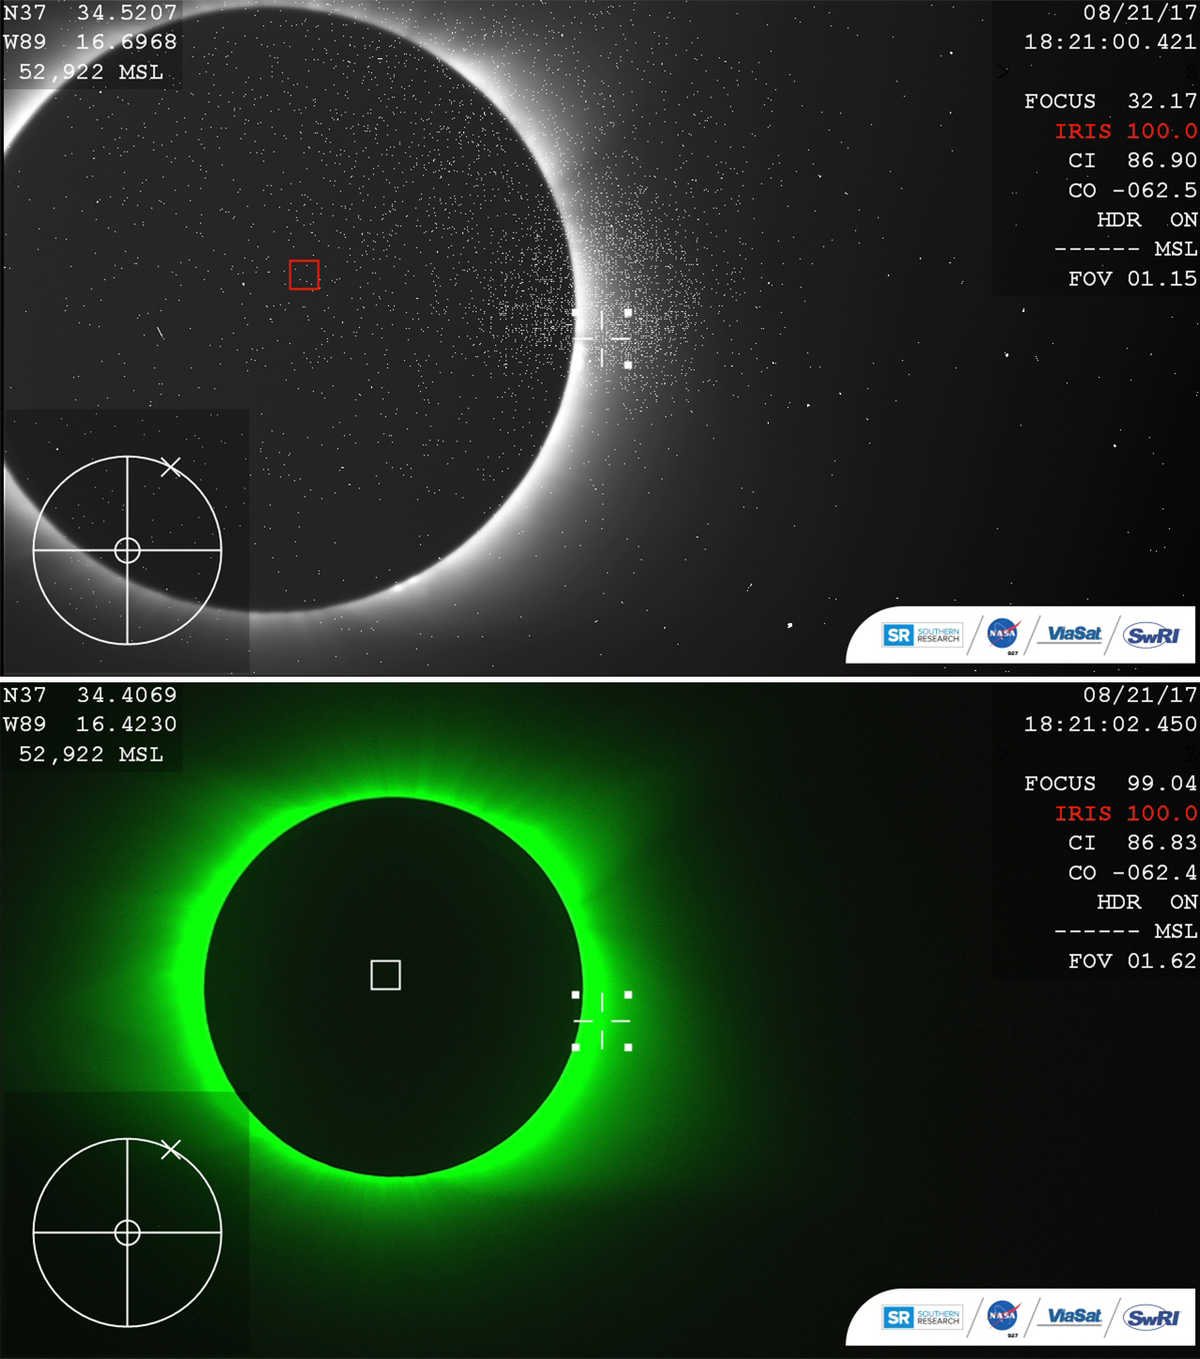 science data and images during the August 21 eclipse